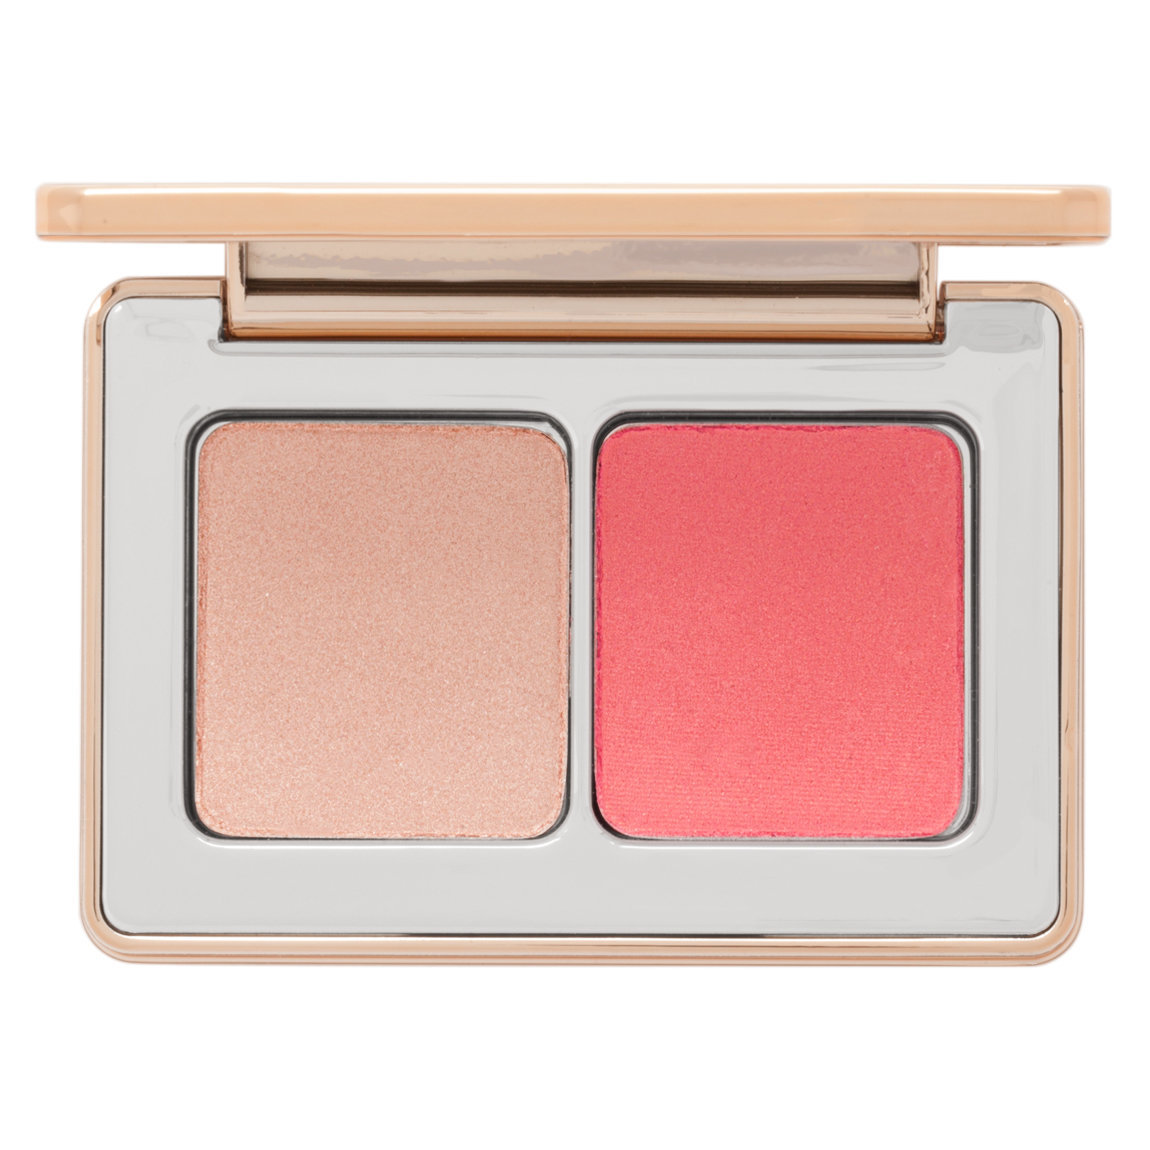 Natasha Denona Mini Blush Glow Duo product swatch.